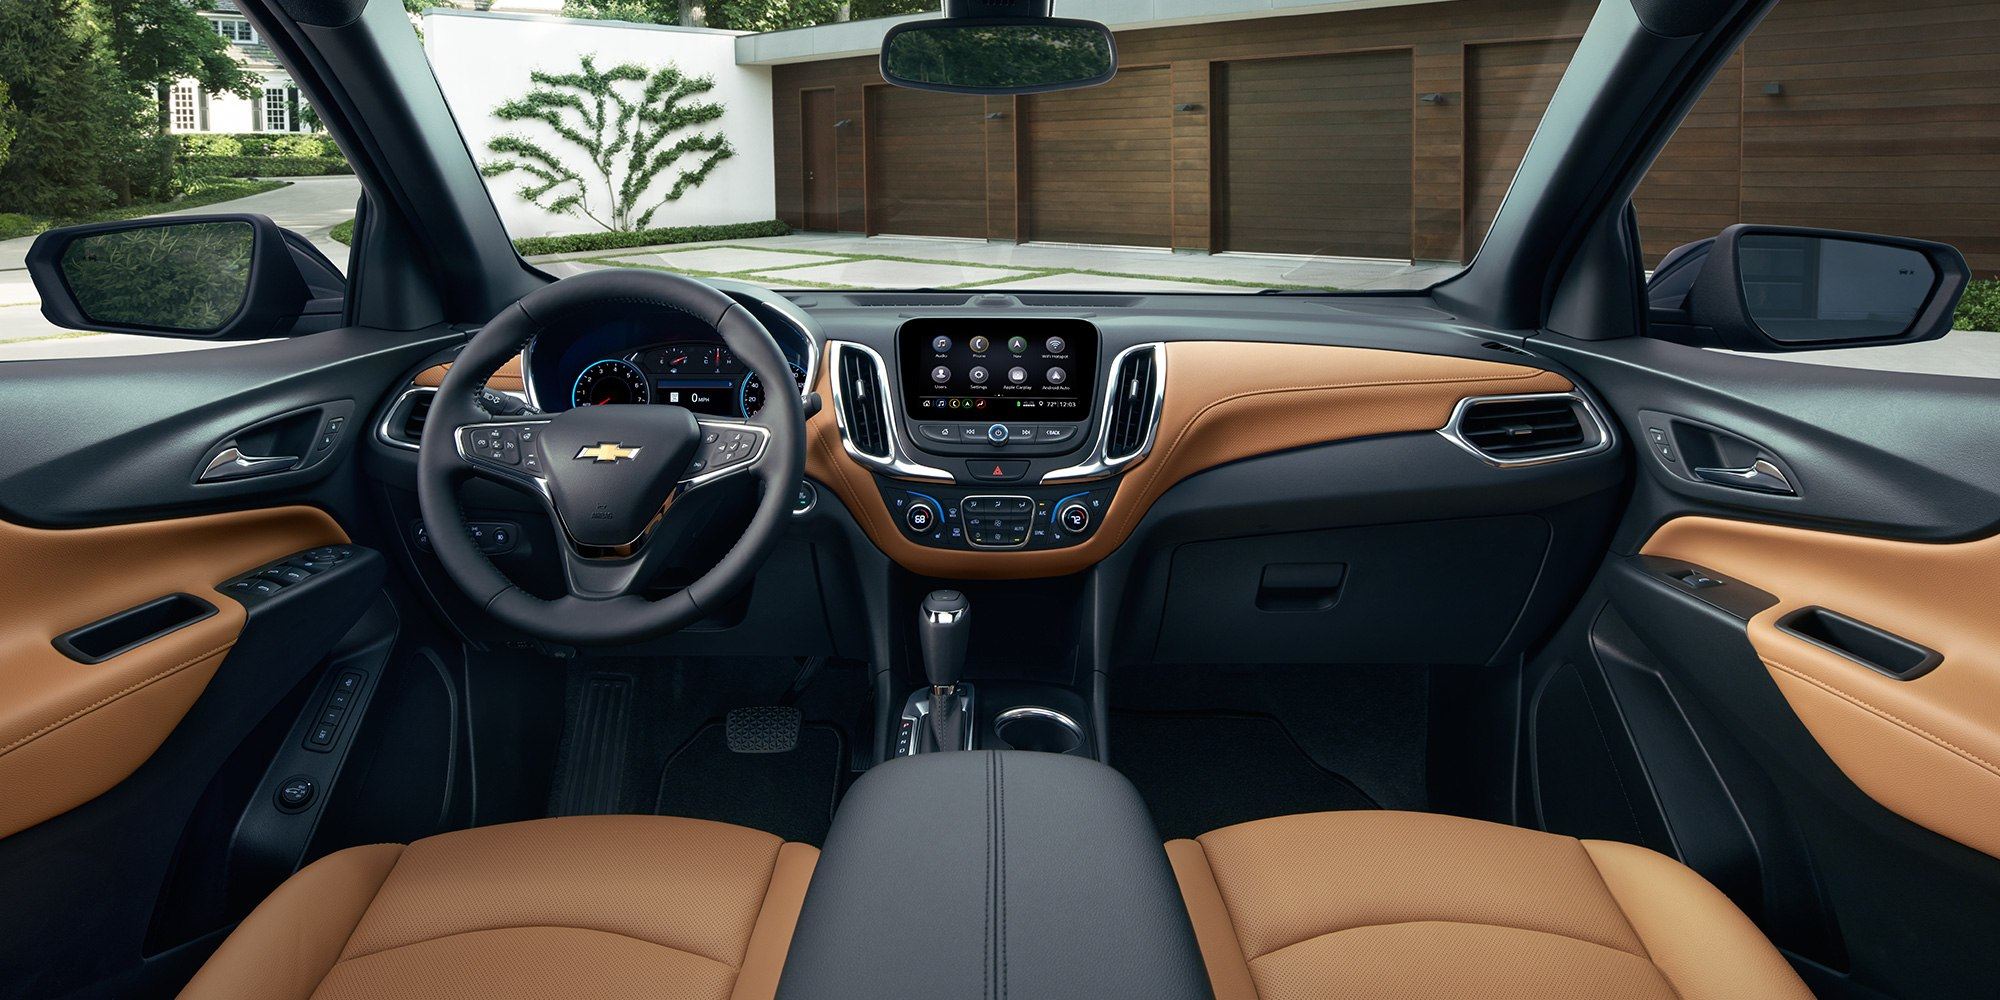 2019 Chevrolet Equinox Front Seating and Console